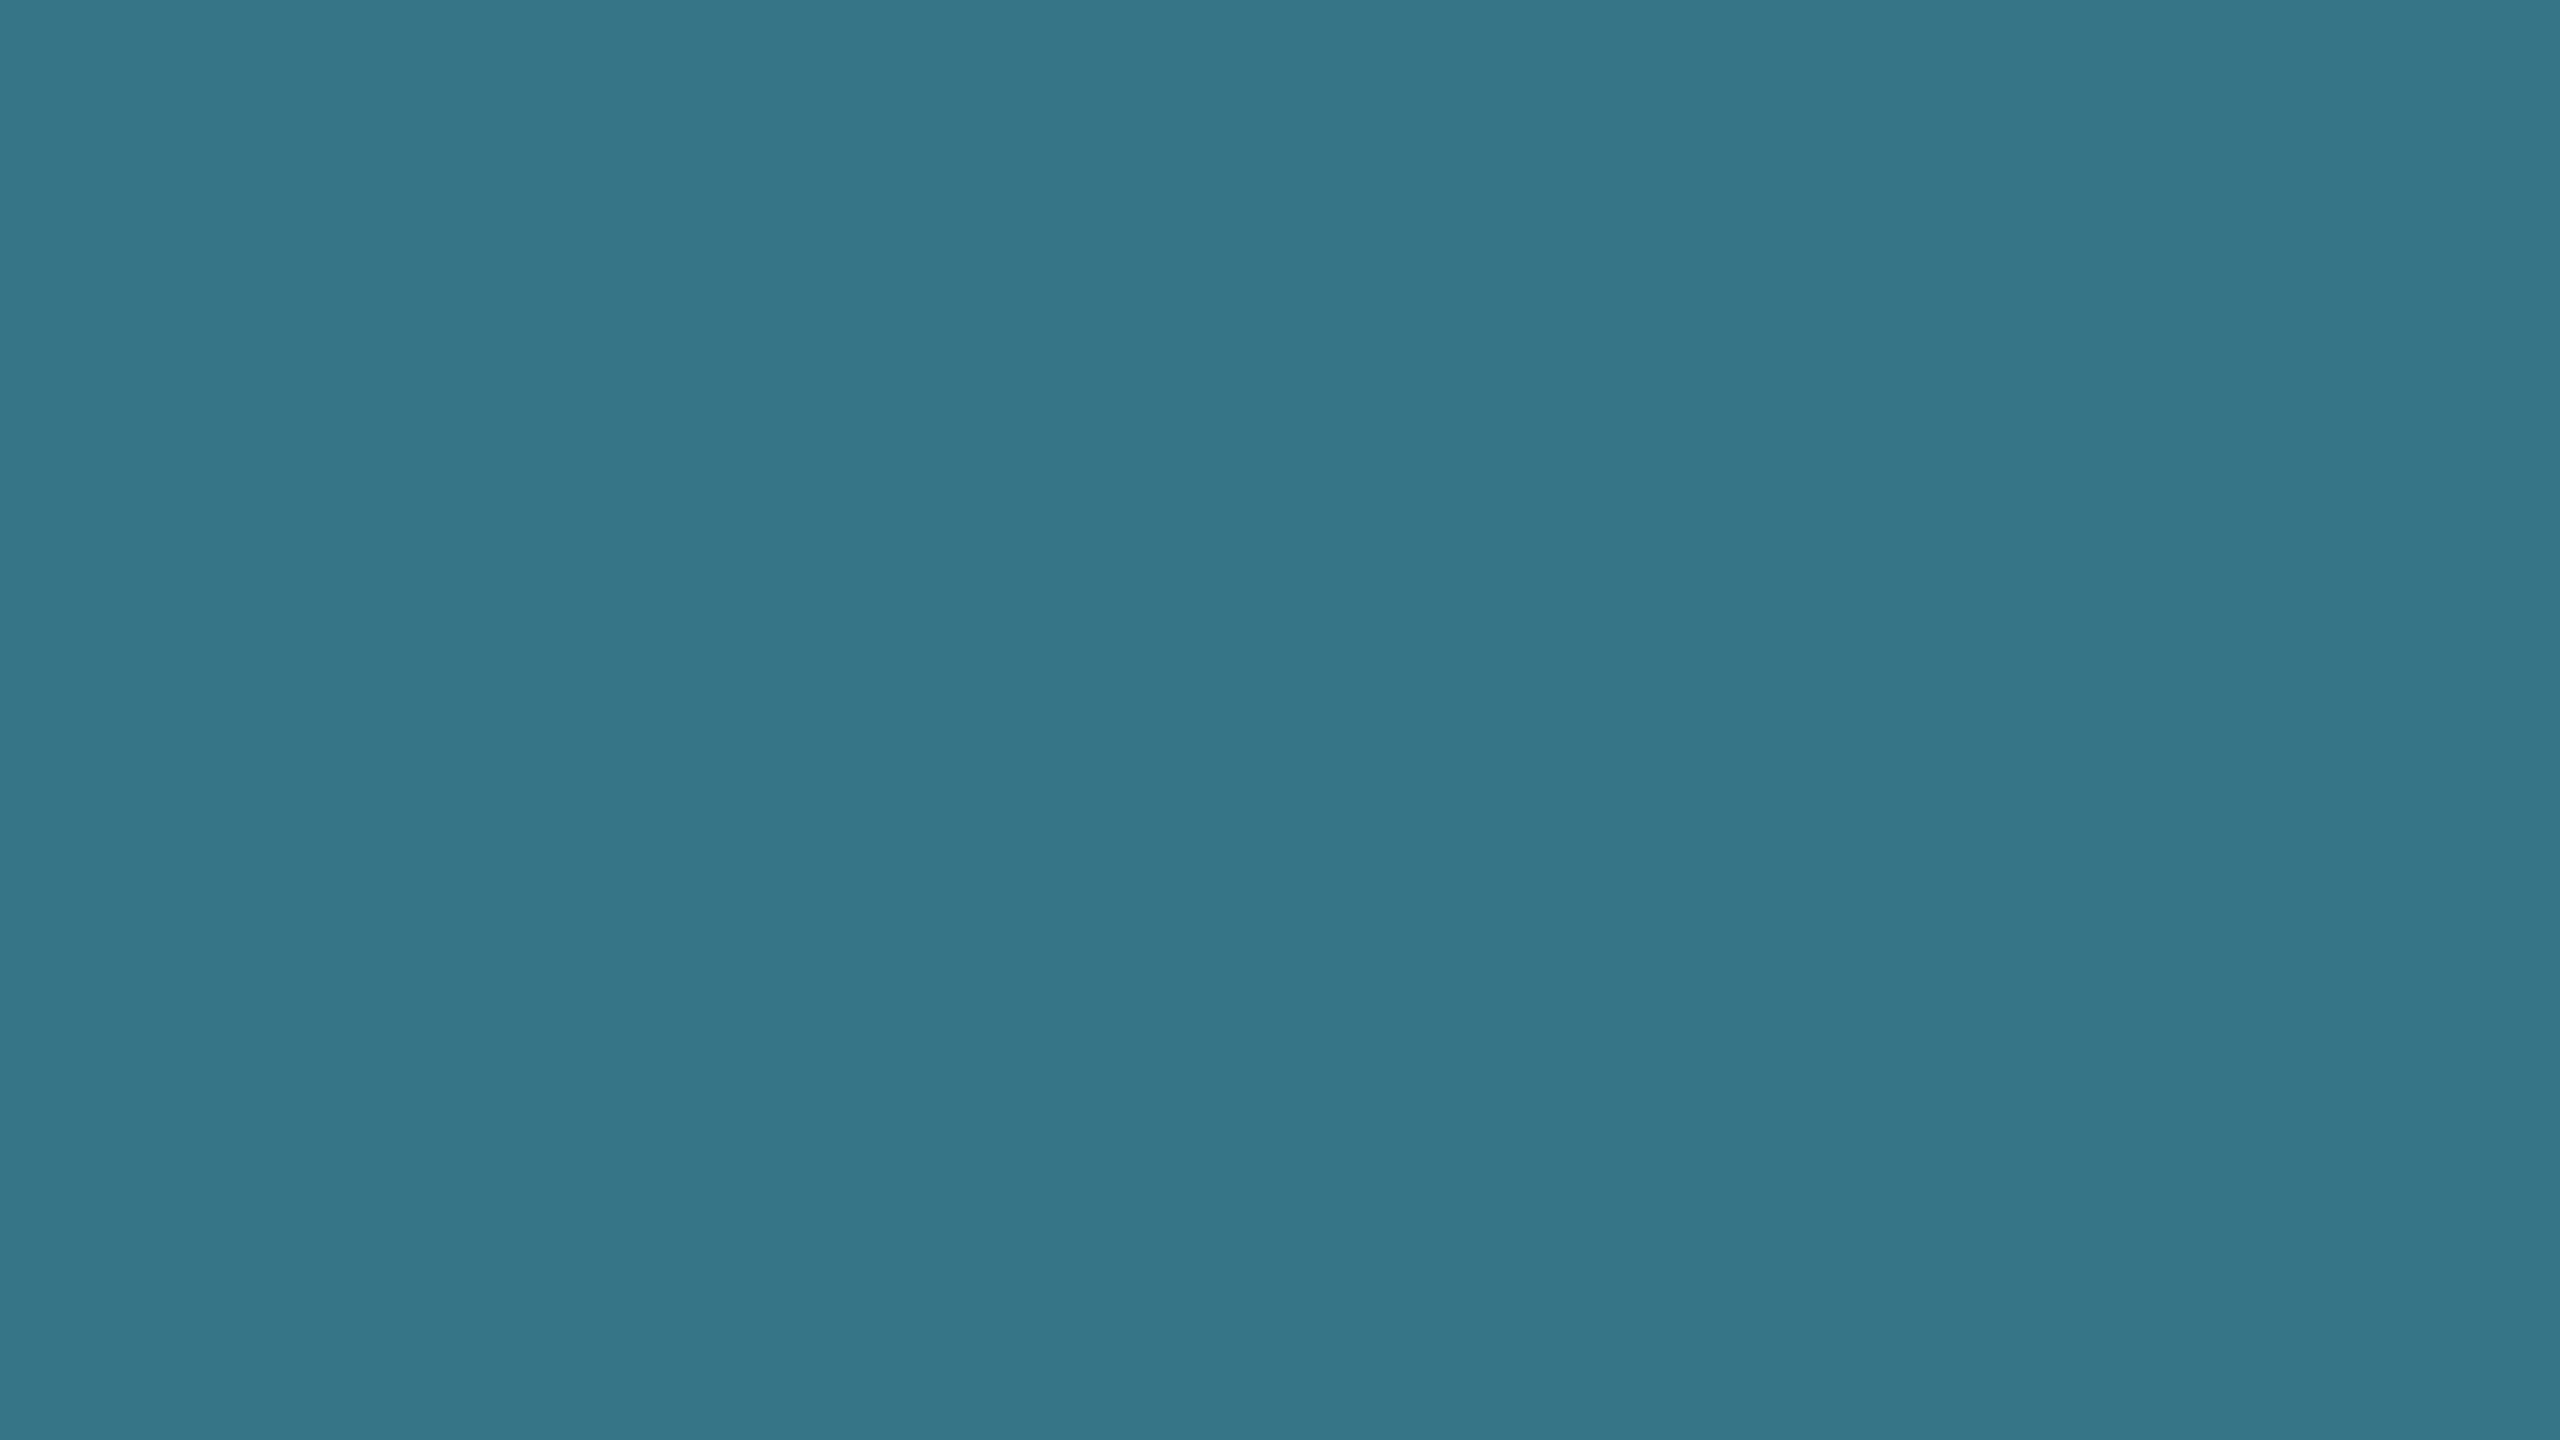 Teal wallpaper background wallpapersafari What color is teal